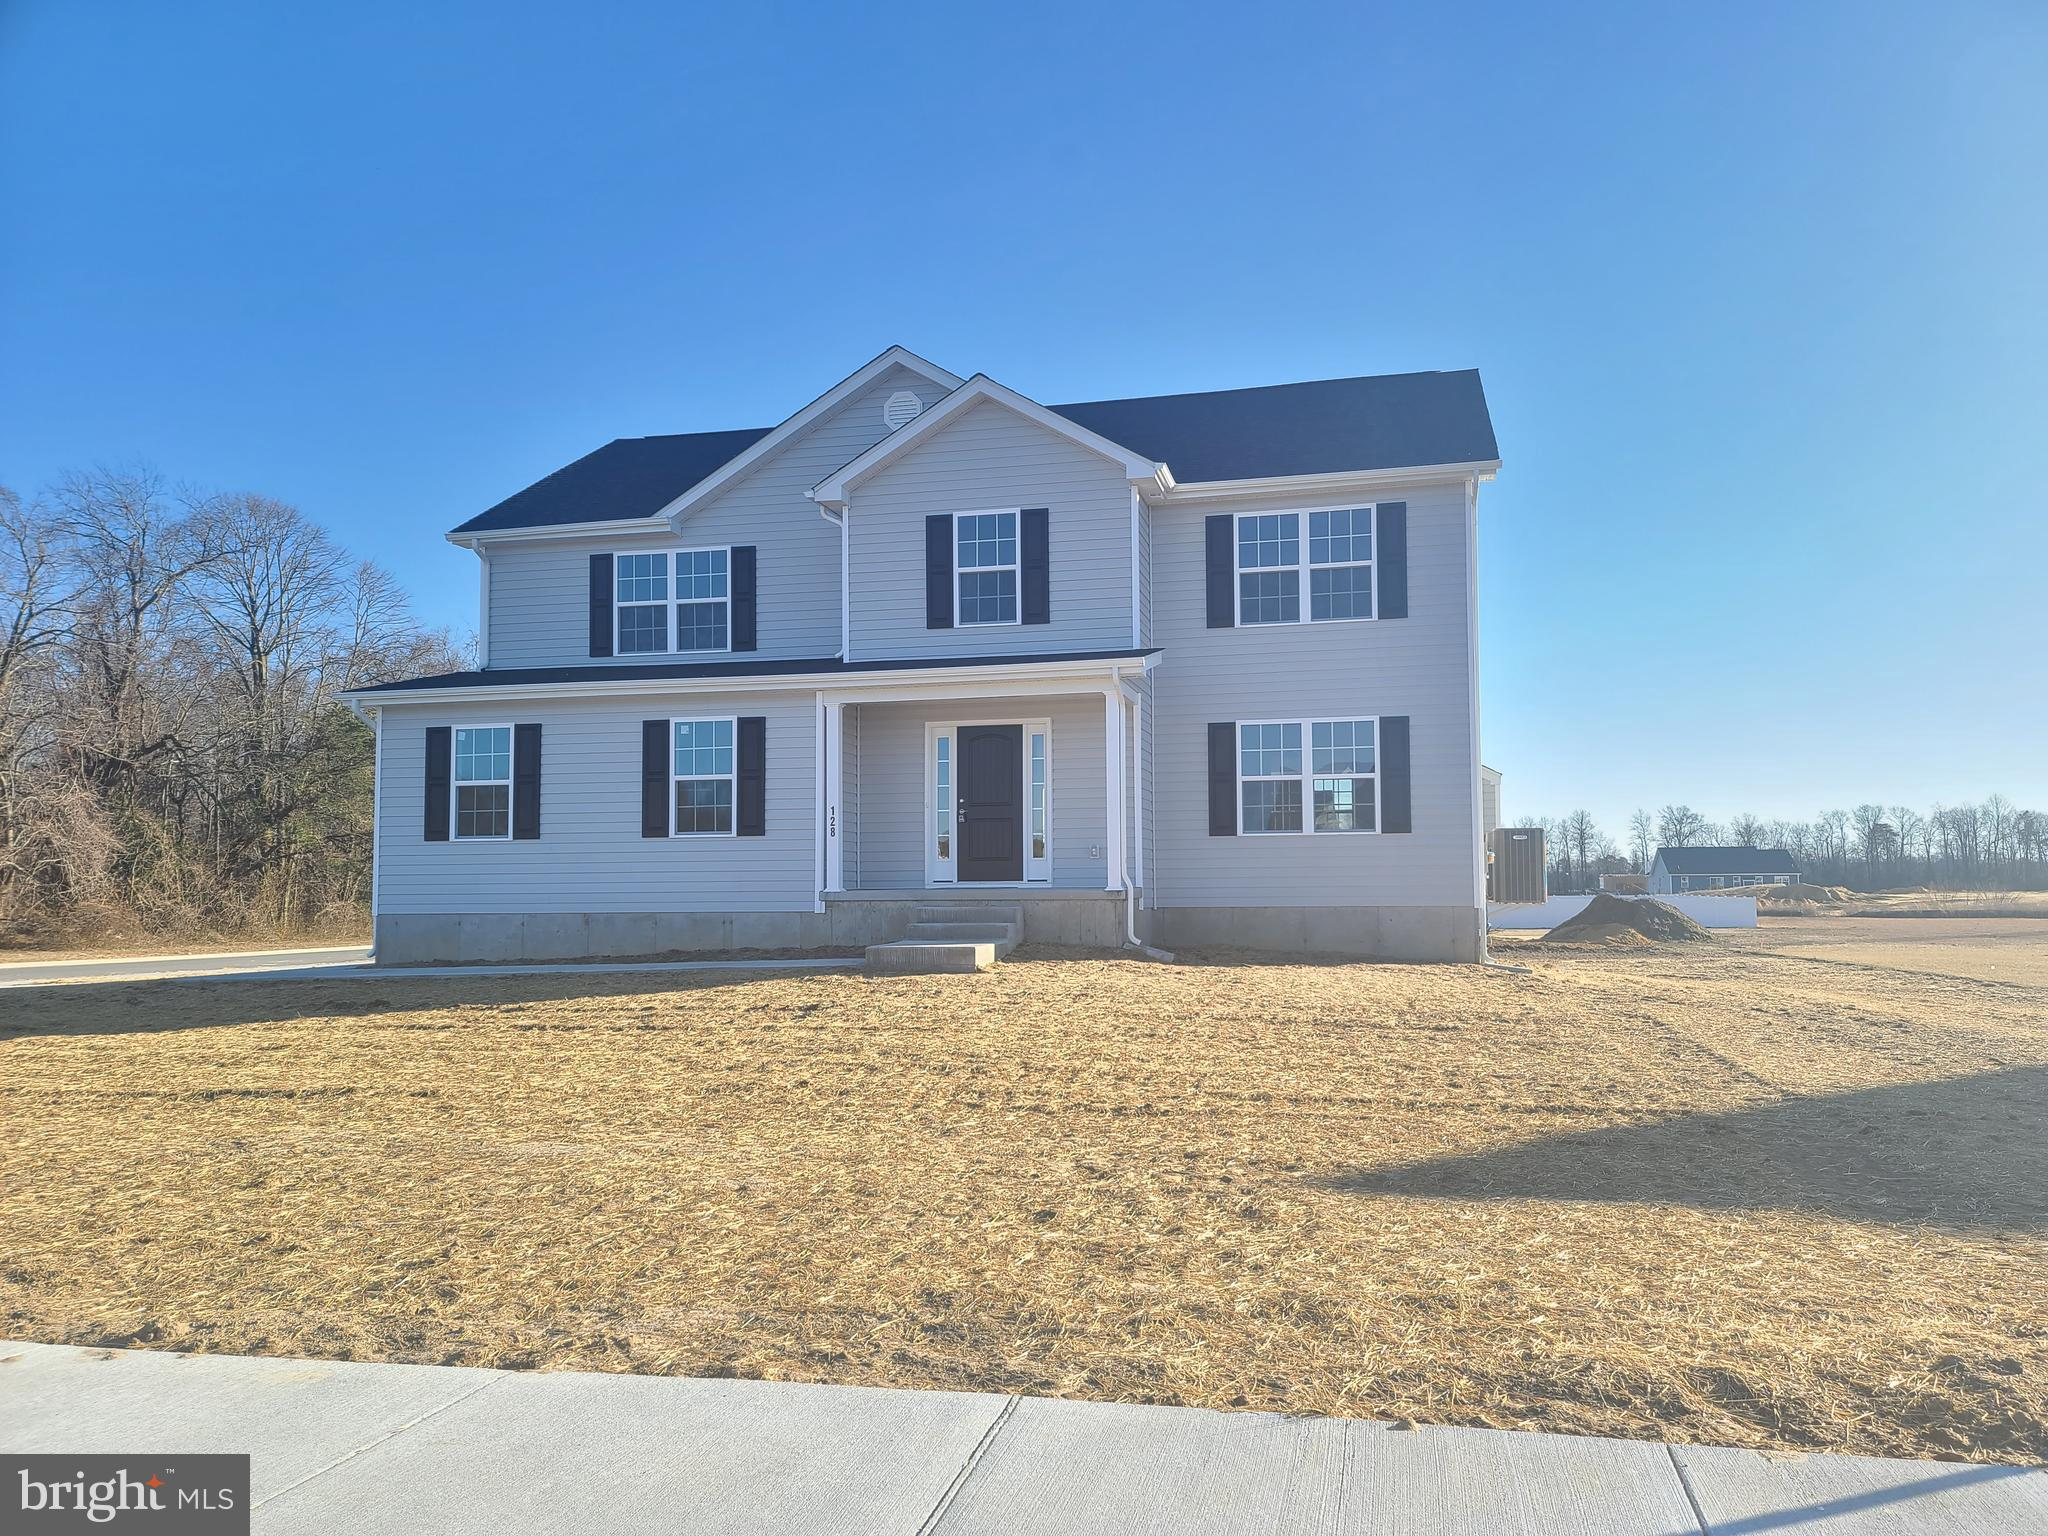 Don't miss this beautiful 2 story home about to go under construction in Governors Grant! This 2400 sqft  home features upgrades such as Luxury Vinyl Plank flooring in main living areas, stainless steel appliances, and granite kitchen countertops. Call today to find out more about this home and custom options available to you!